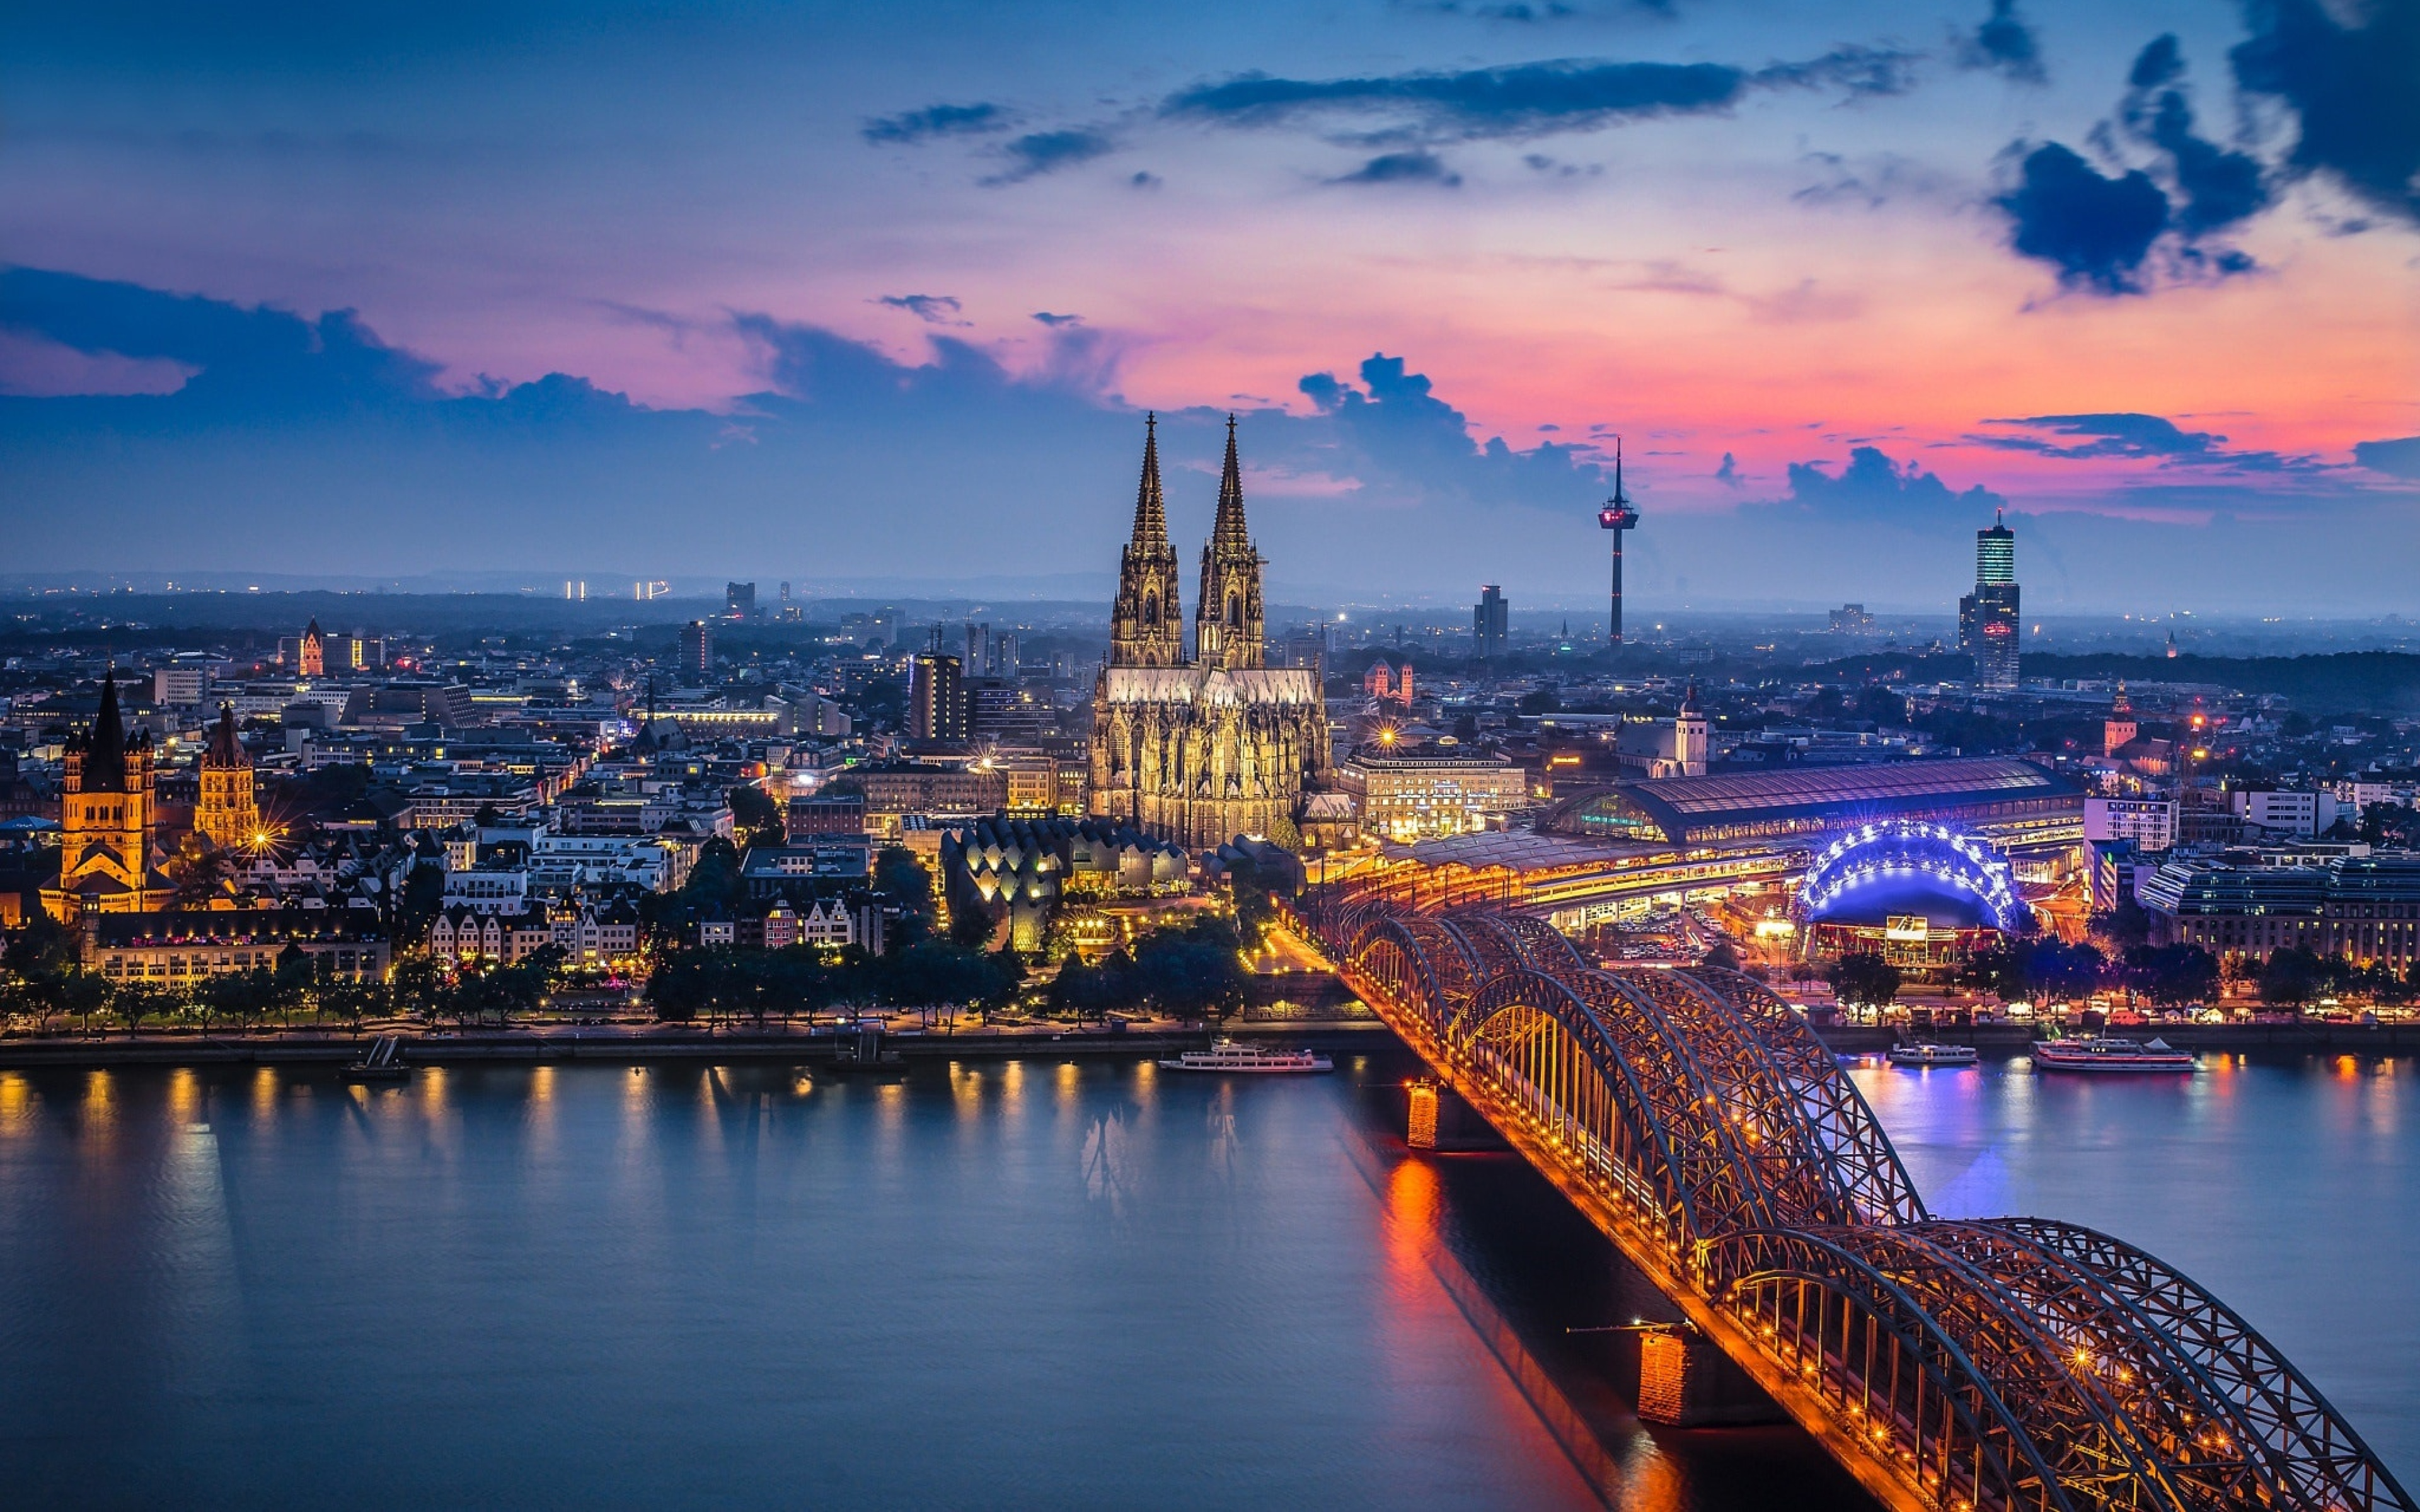 cologne-germany-at-night-thumbs-sexy-hot-teen-babes